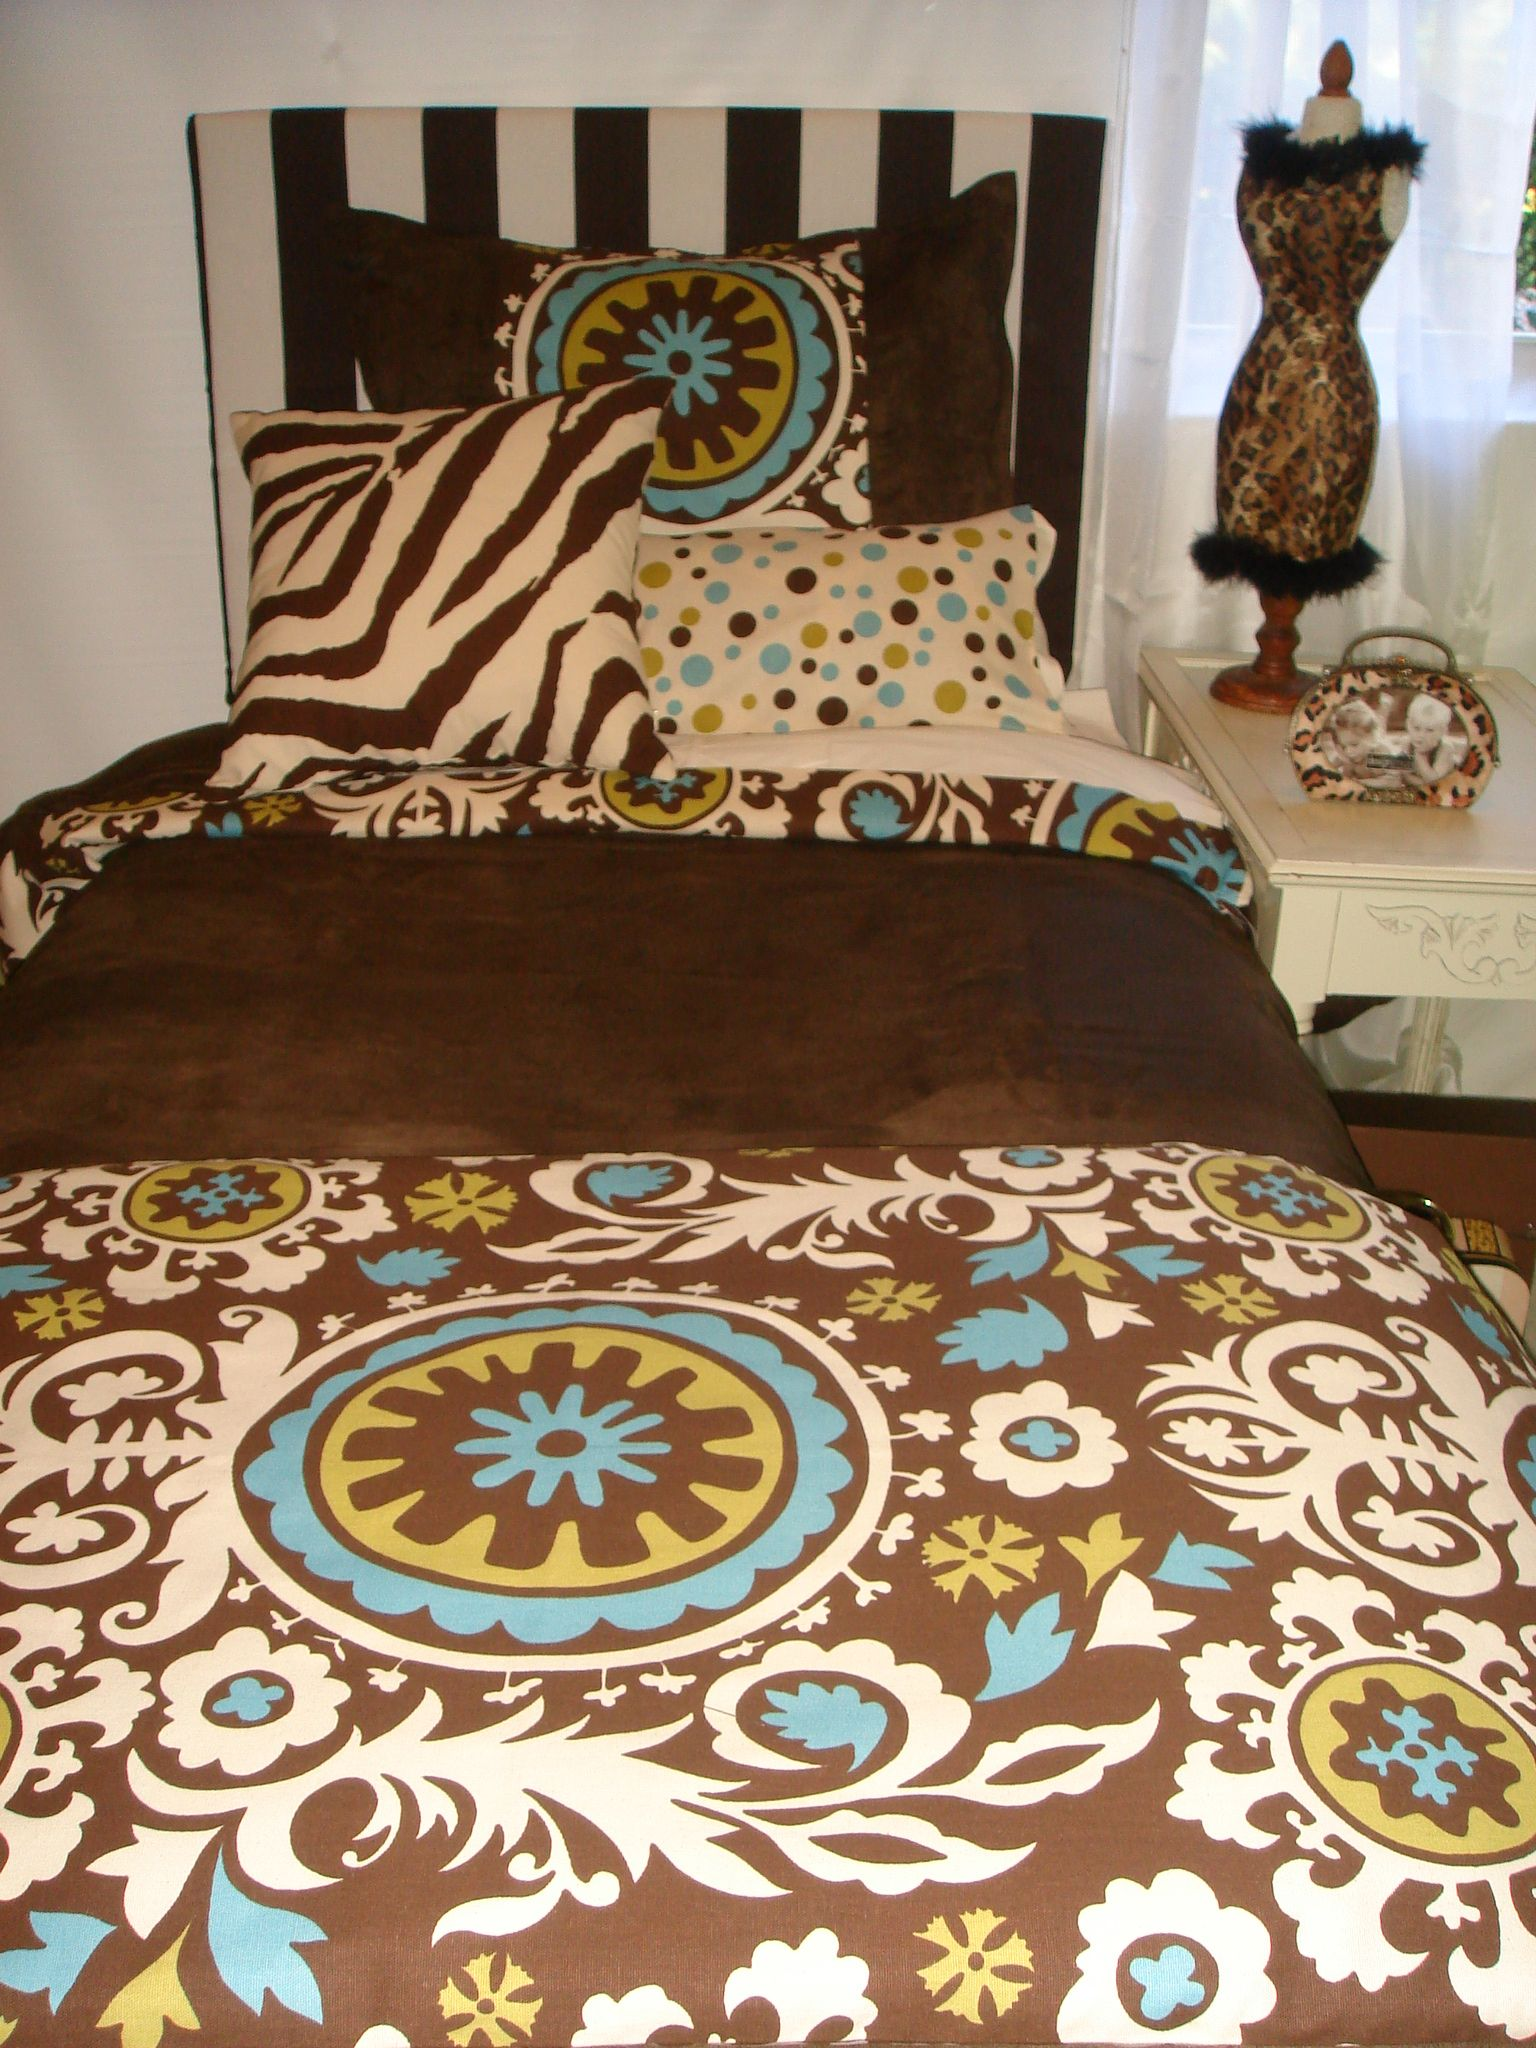 Design Your Own Dorm Room: Need Dorm Room Bedding And Dorm Decor?